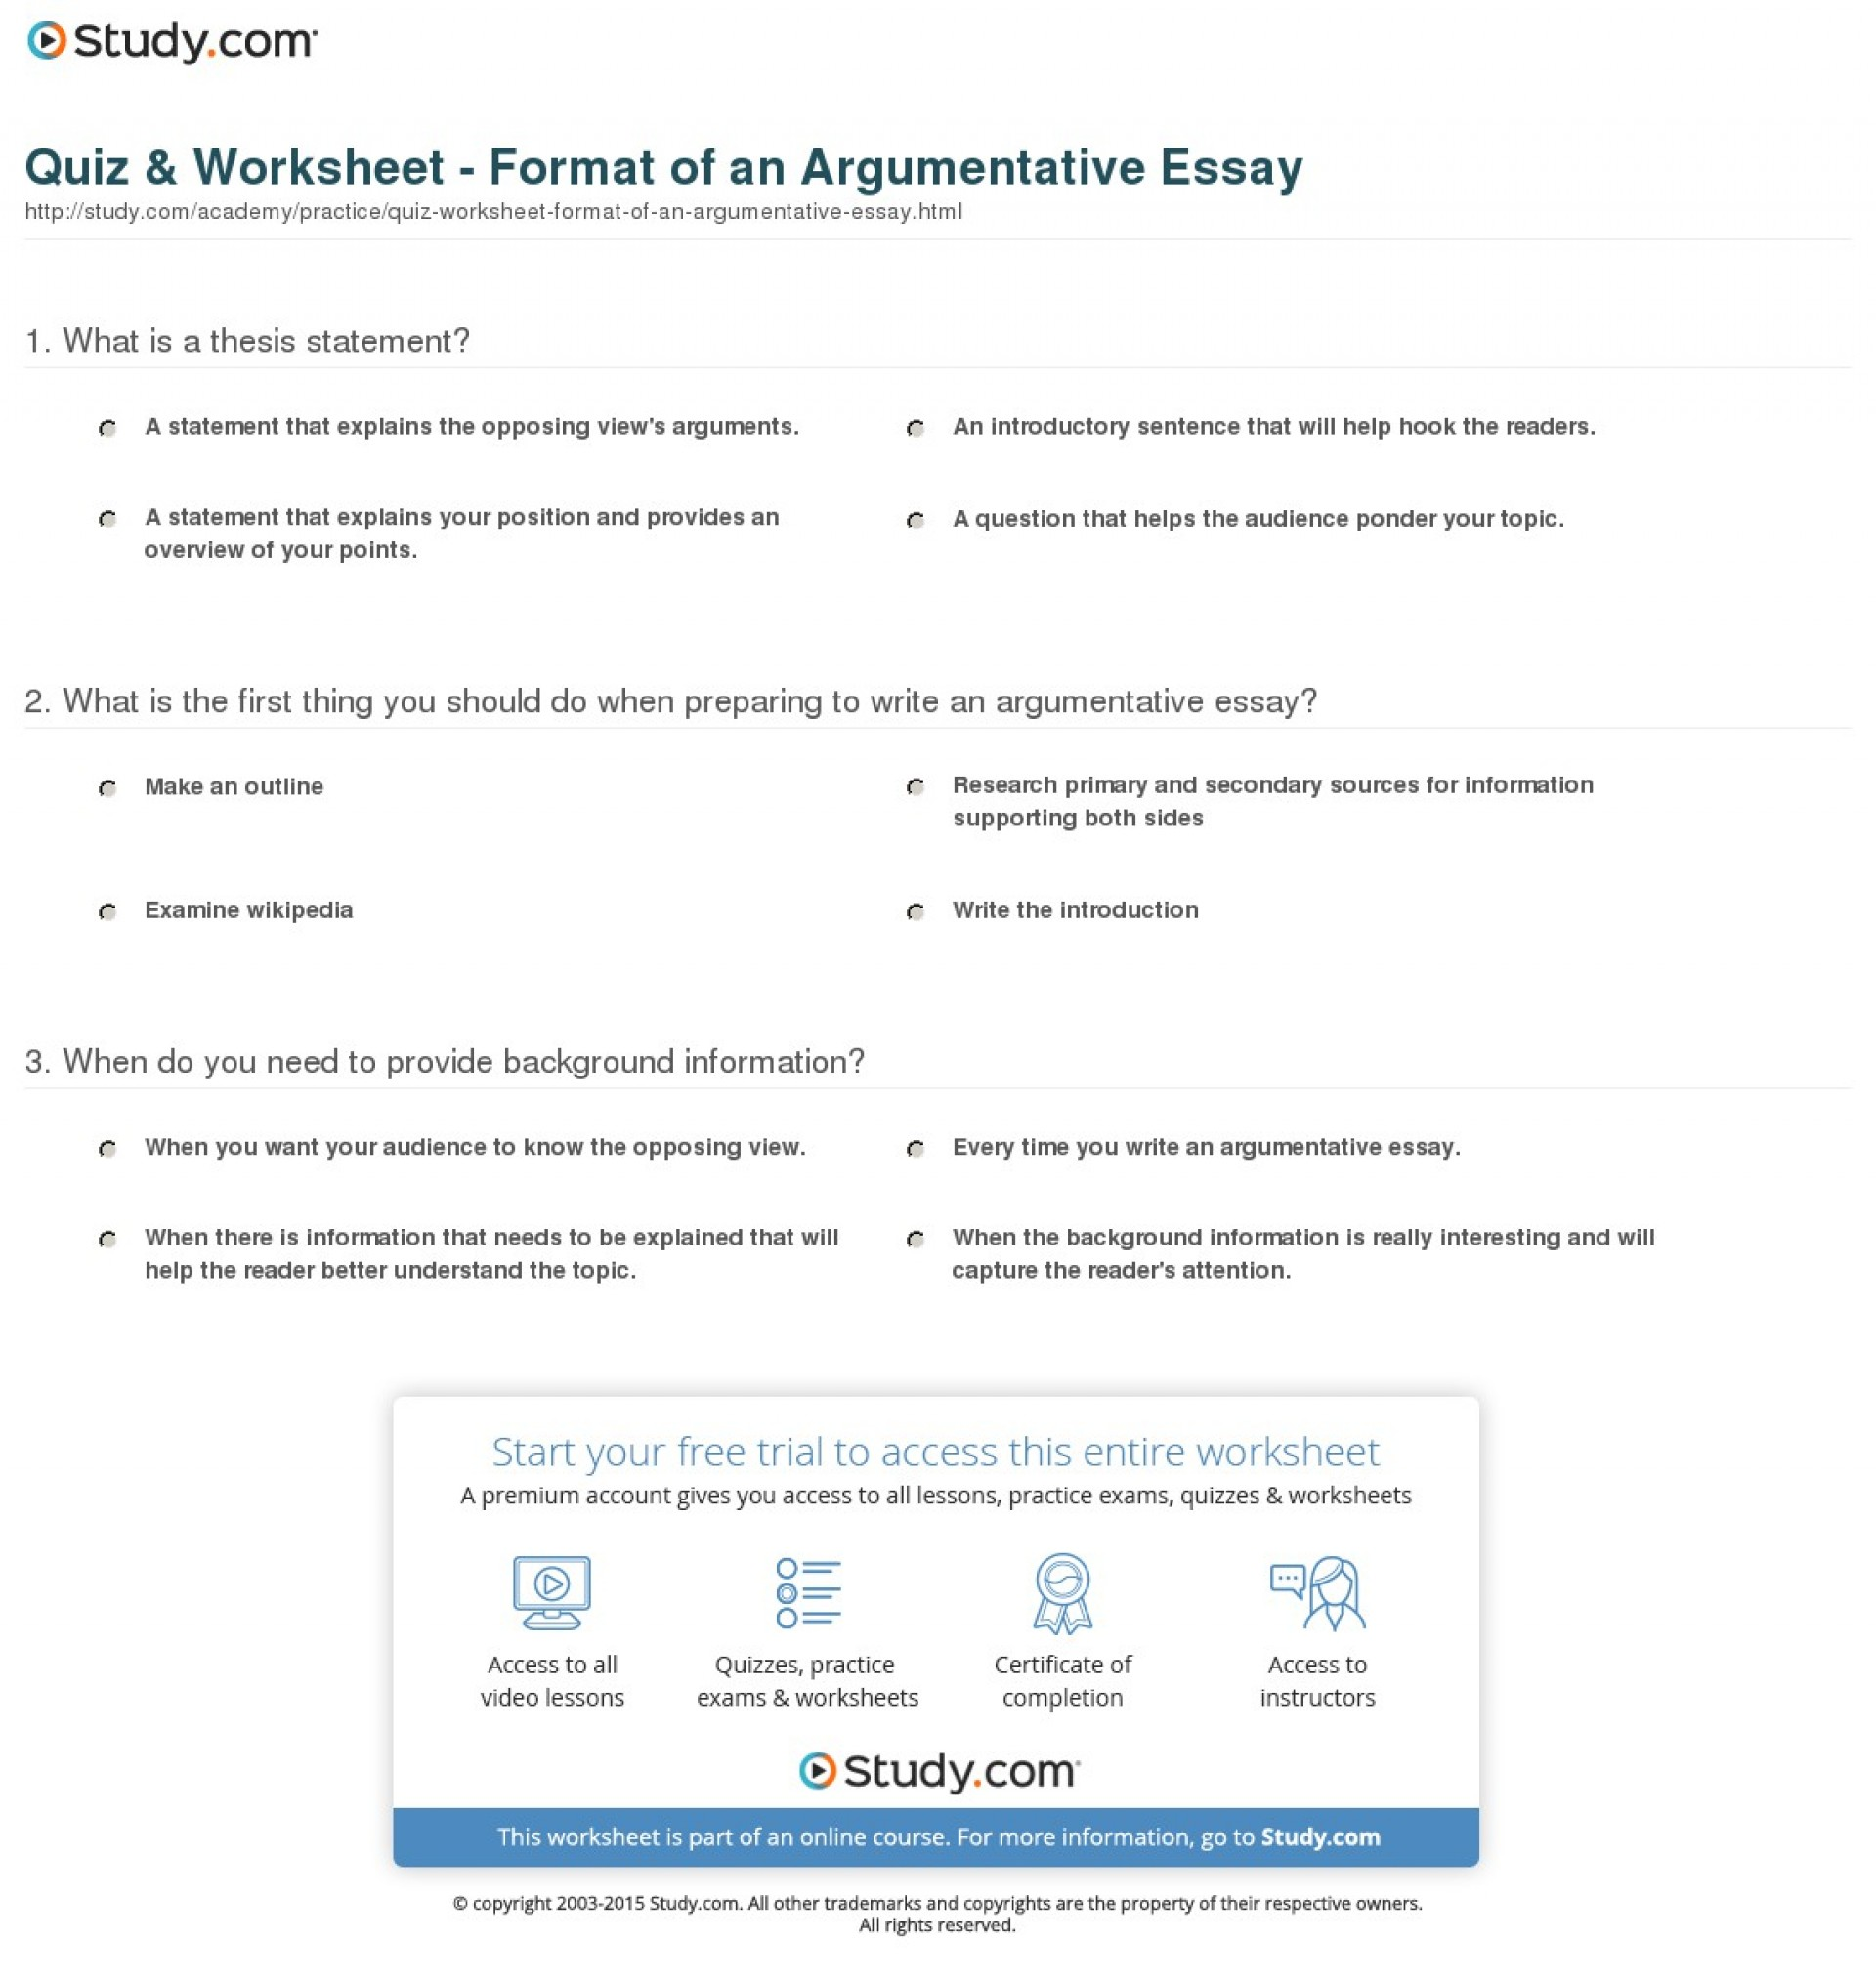 004 Essay Example Quiz Worksheet Format Of An Argumentative Fearsome Definition Wikipedia Define & Examples 1920